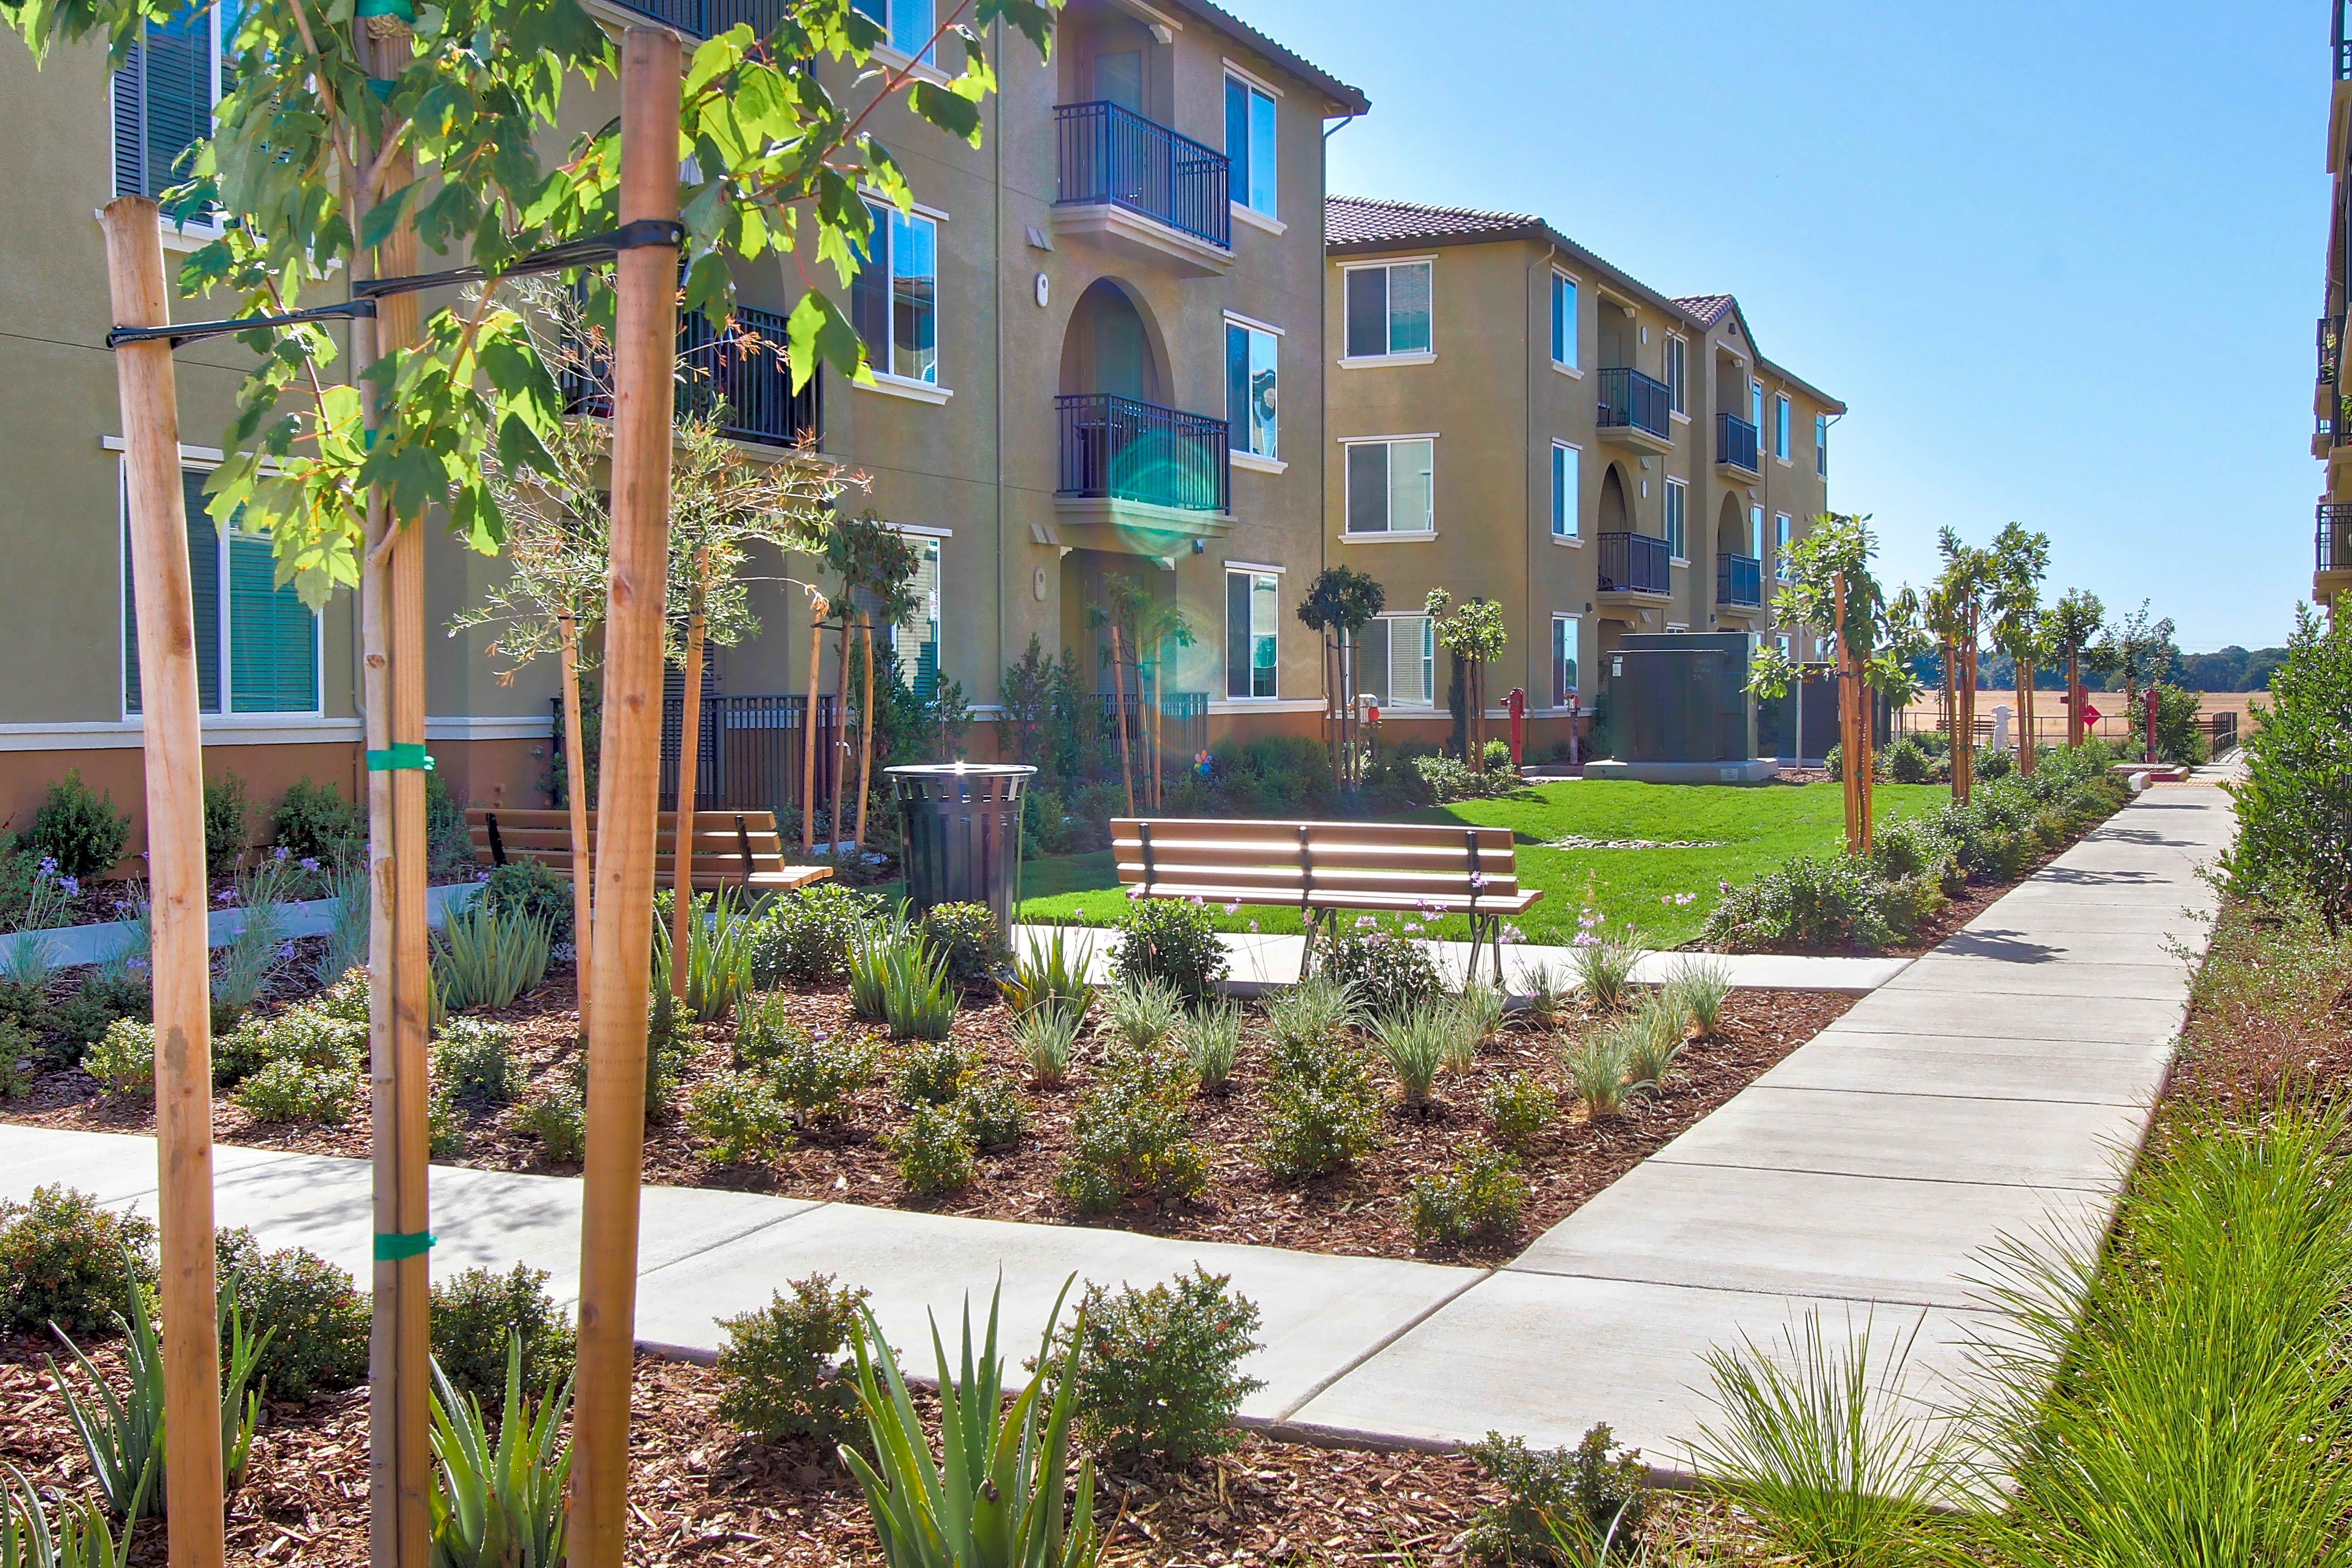 Apartments Near Sierra Campus Oaks Apartments for Sierra College Students in Rocklin, CA